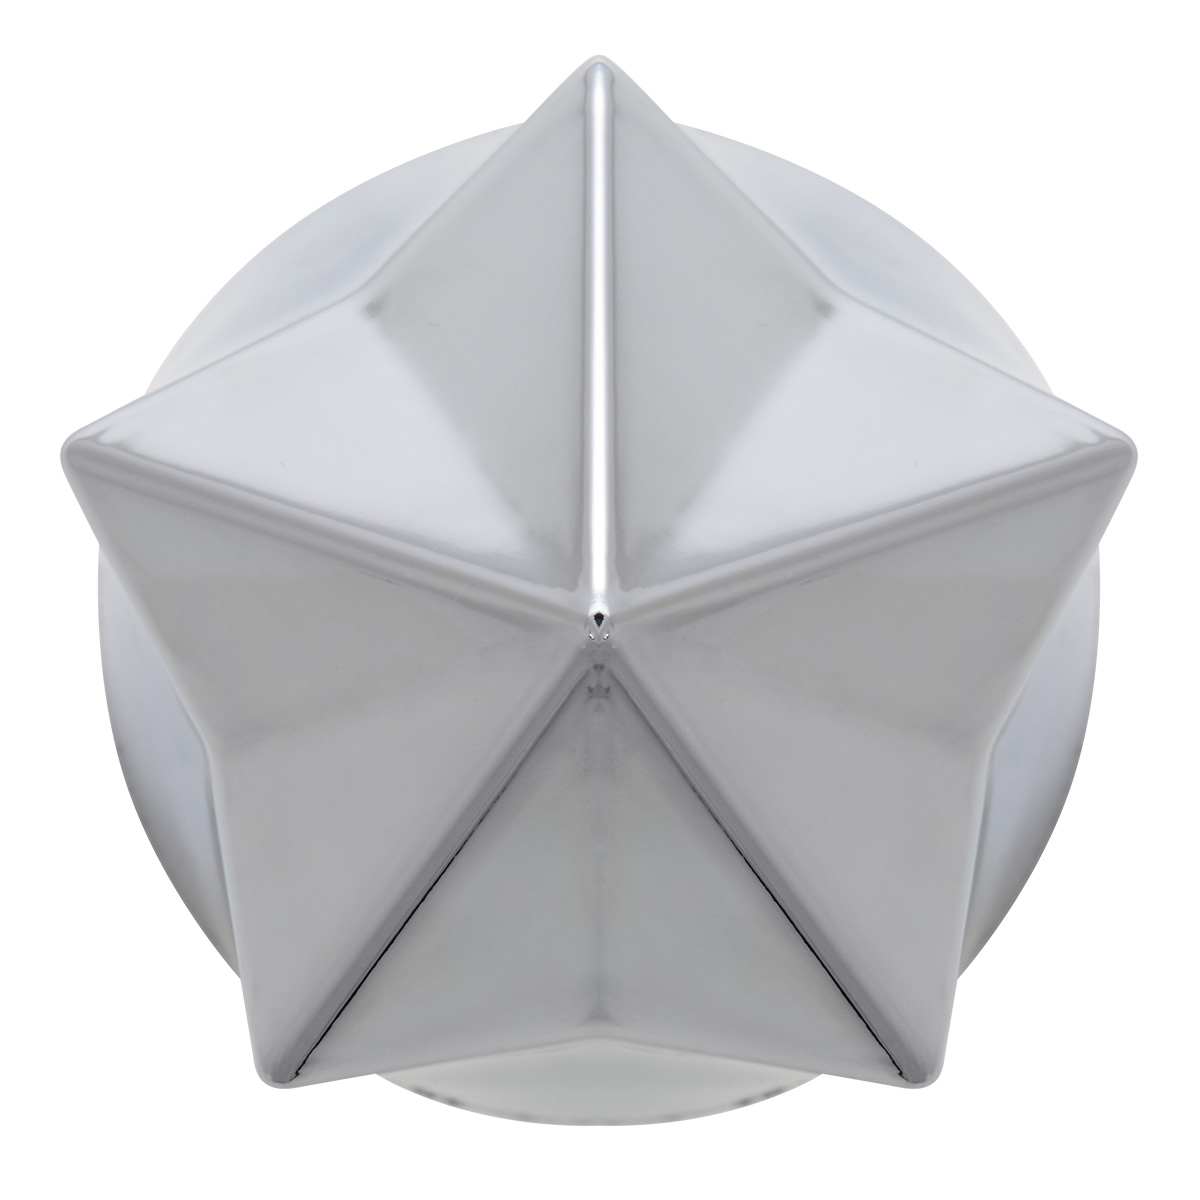 Pointed Star 33mm Lug Nut Cover - Top View